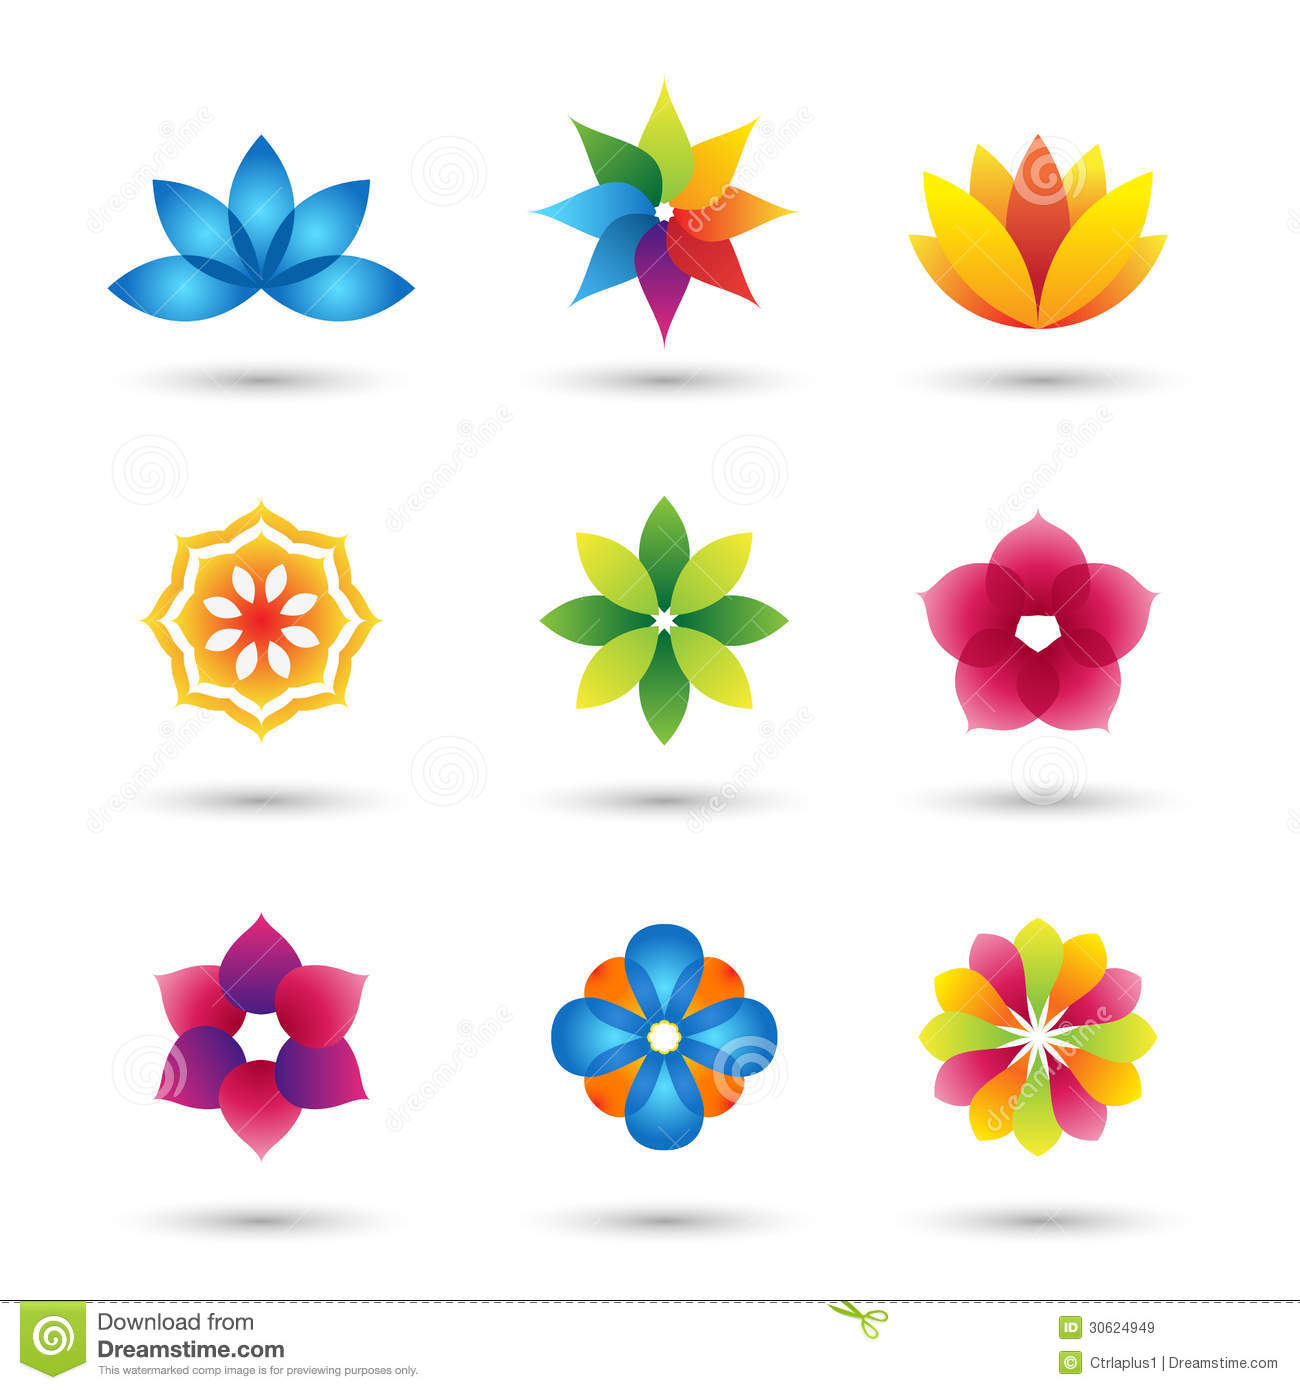 Lotus Flower Design Wall Paper : Abstract flower logo and icons set stock vector image